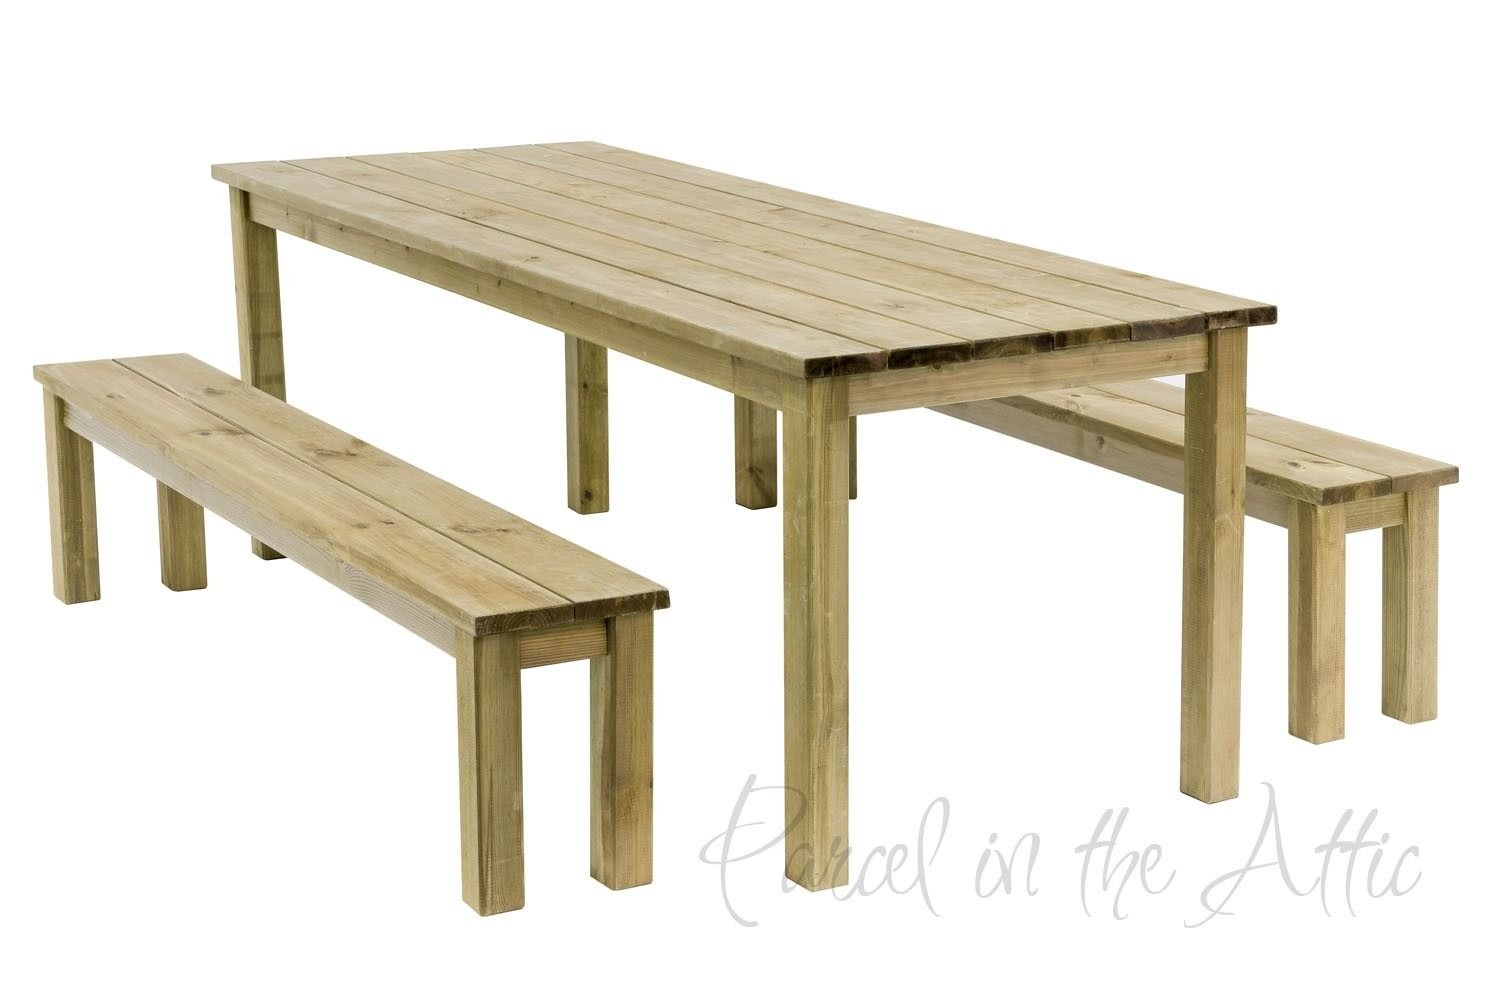 Parcel In The Attic Ferrol Rectangular Garden Table Bench Set Garden Table Bench Set Wooden Picnic Tables